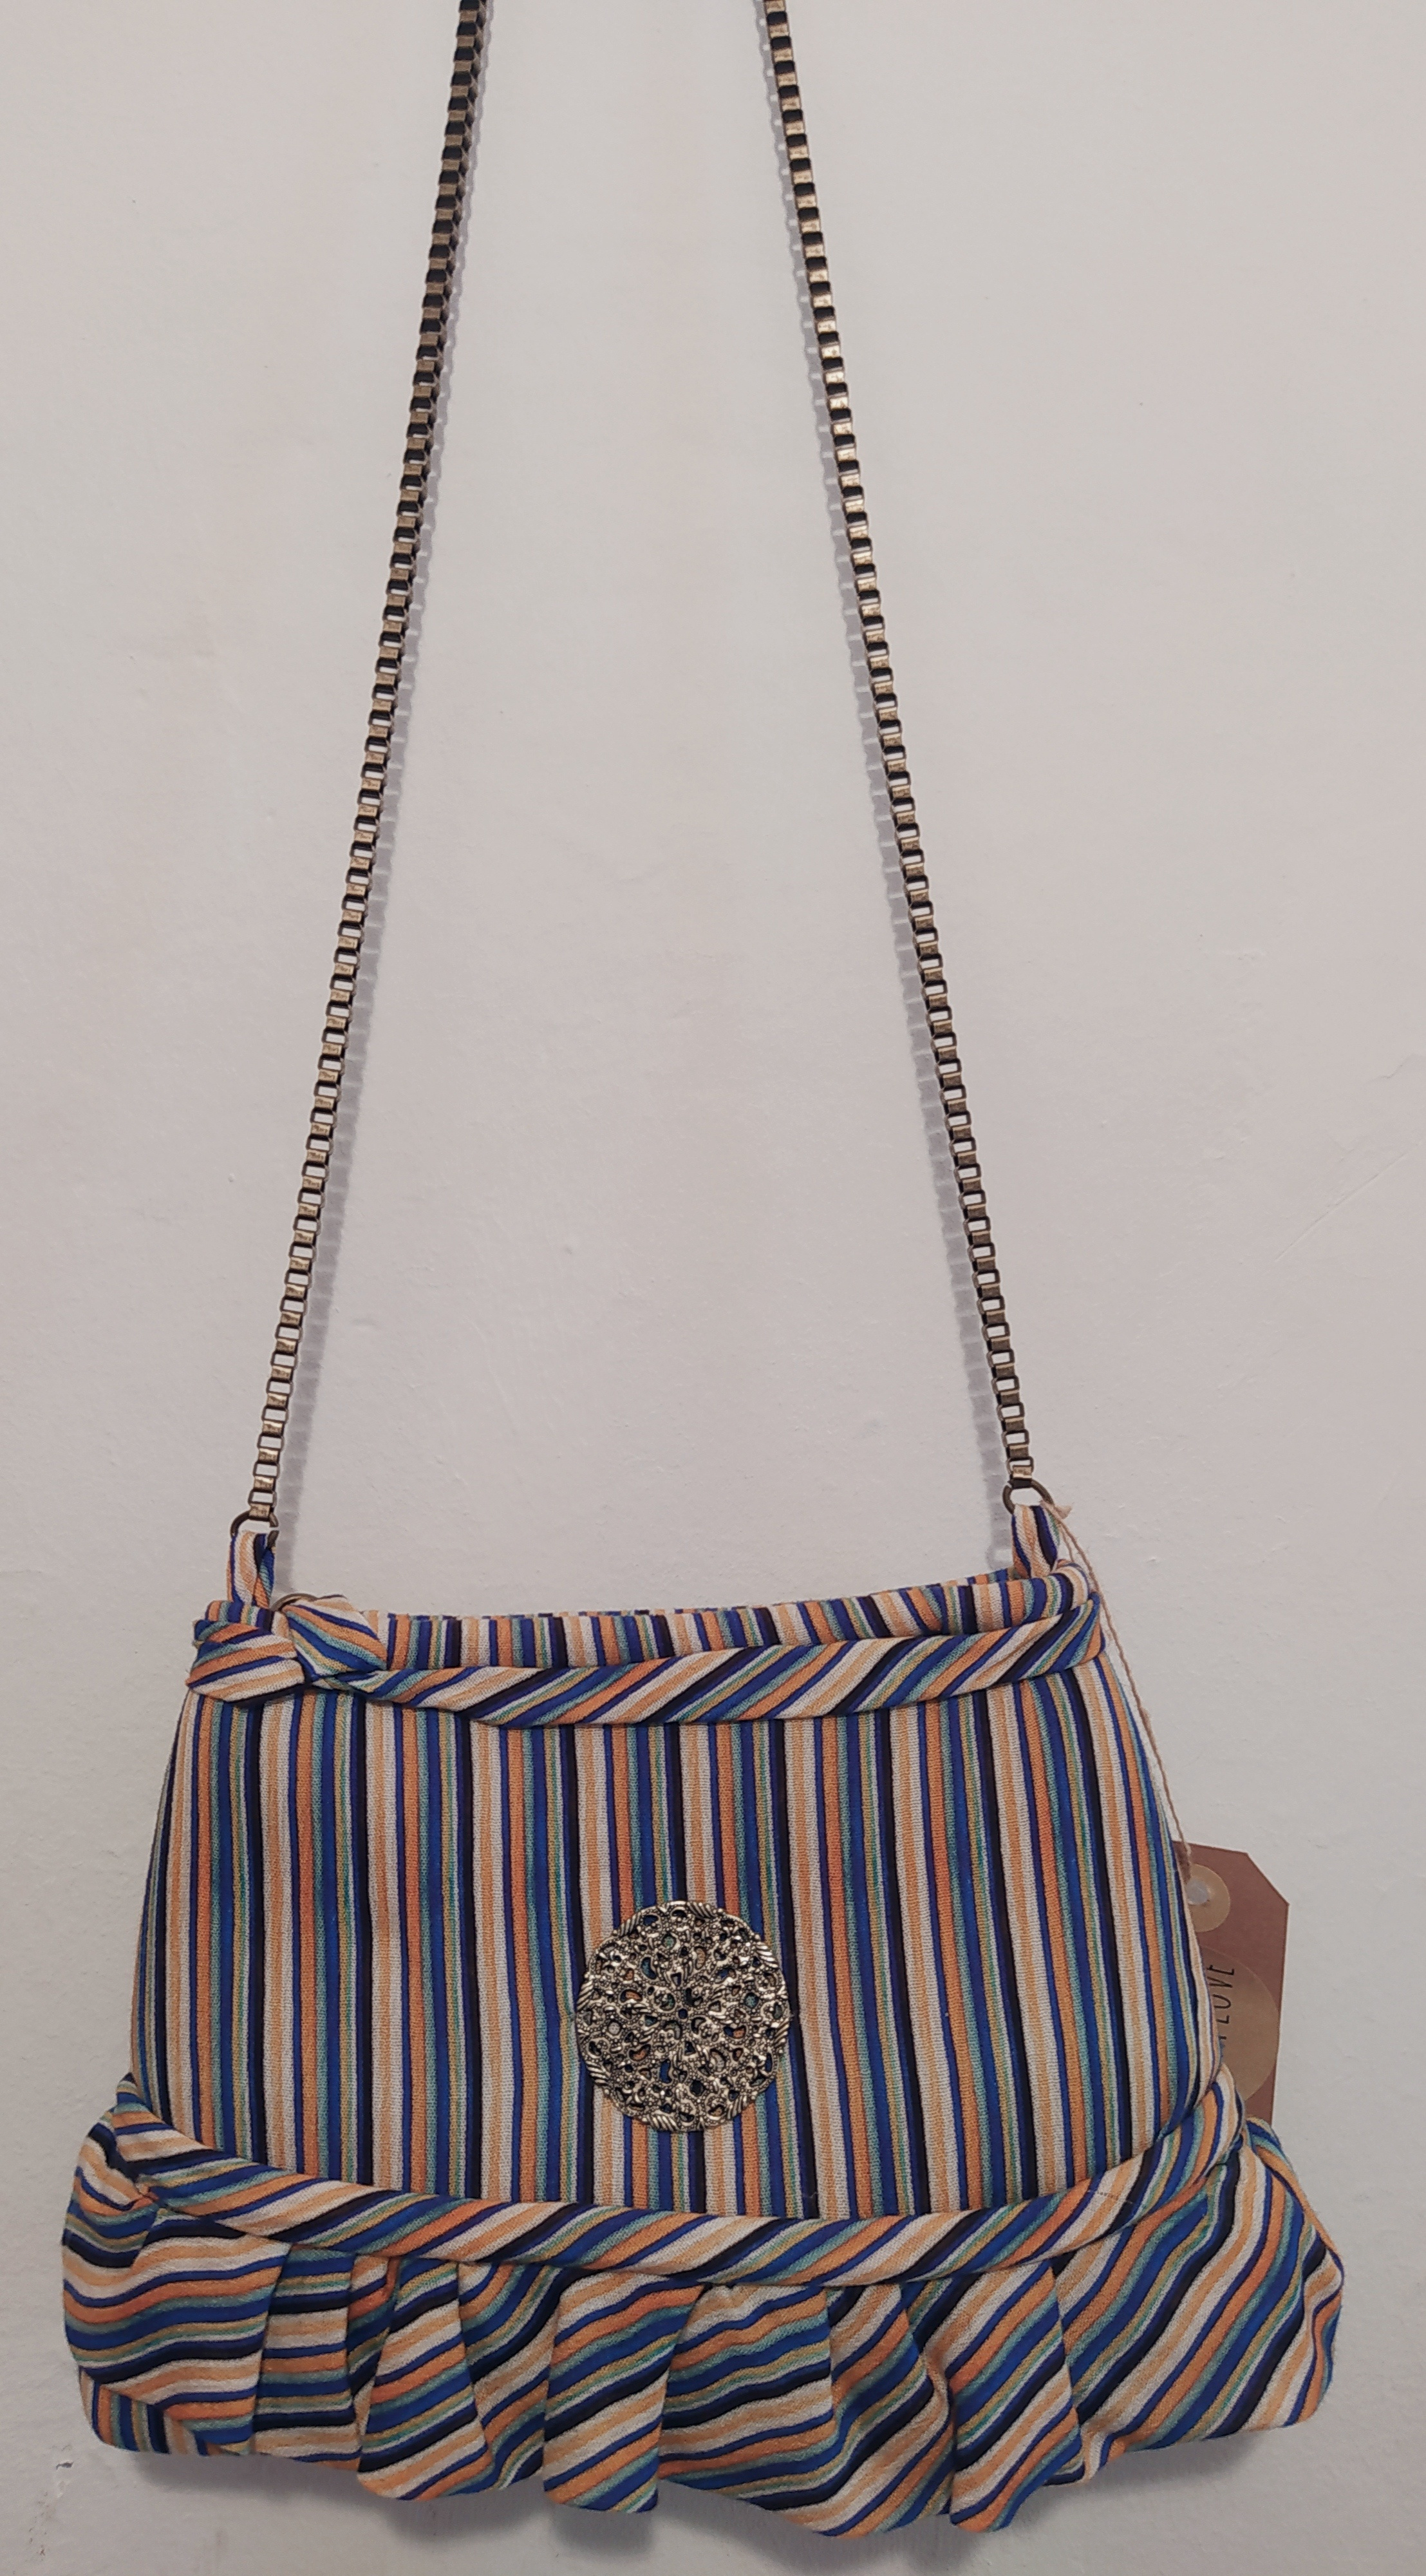 Striped bag with ruffle